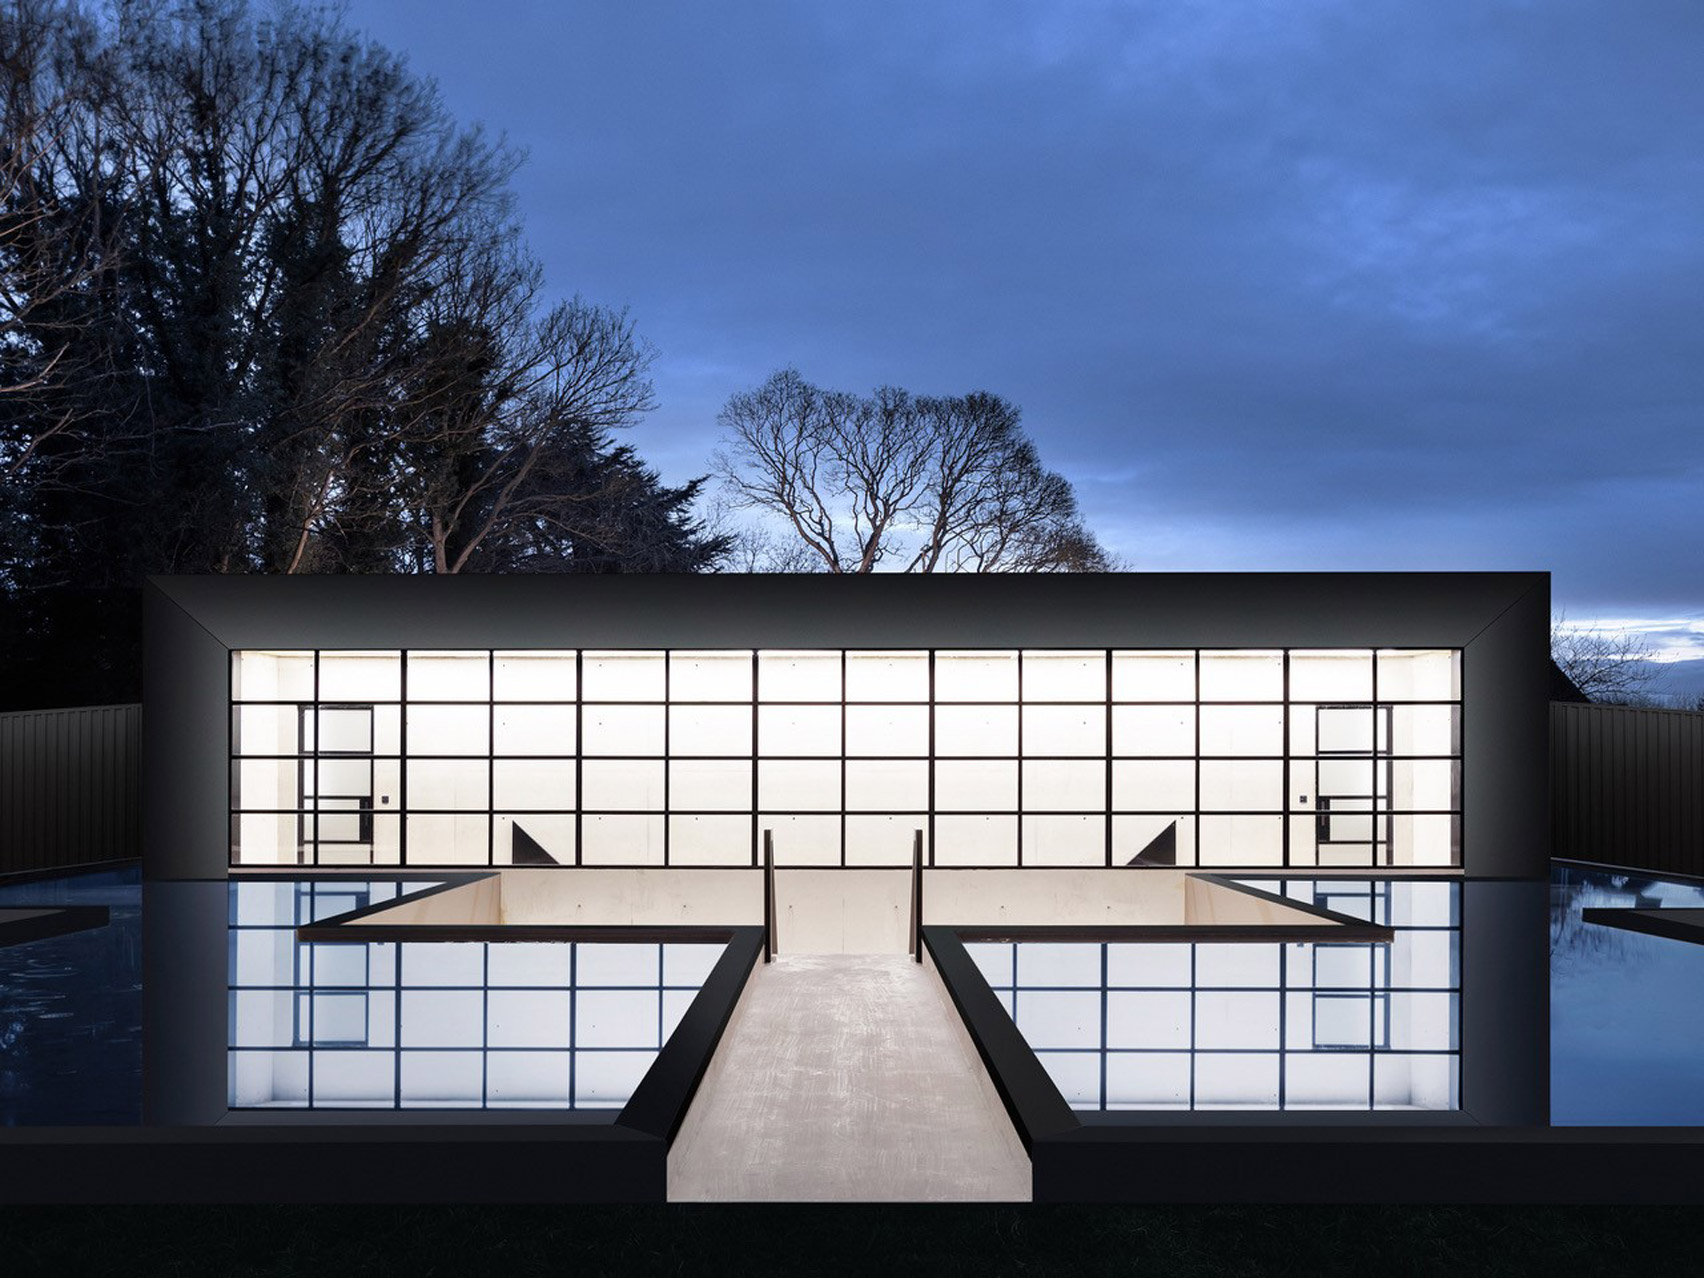 RIBA House of the Year 2019 longlist: Ghost House by BPN